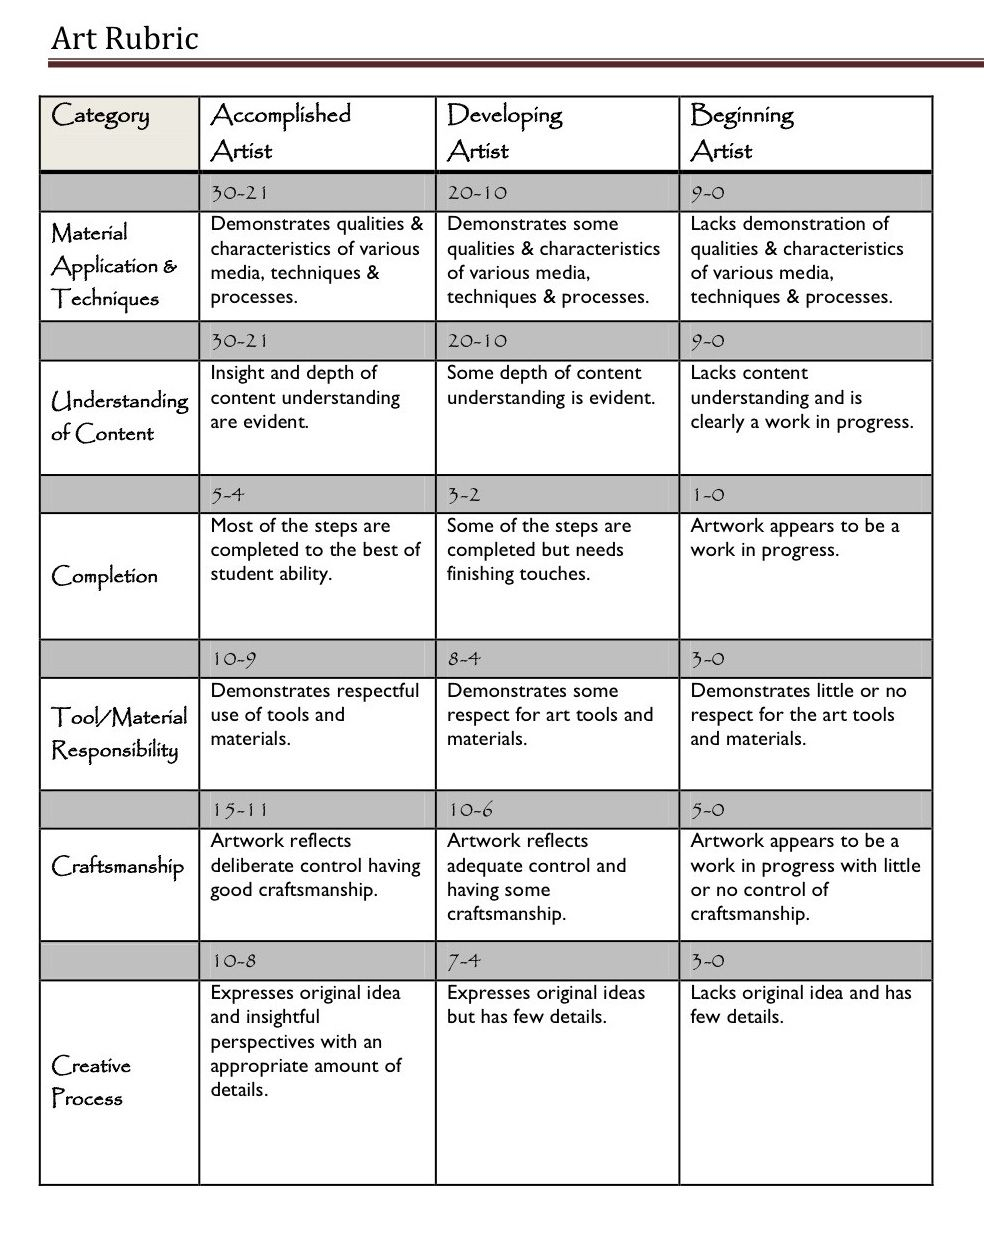 A Handy Rubric For Art Teachers | Assessment Tools & Ideas - Free Printable Art Rubrics